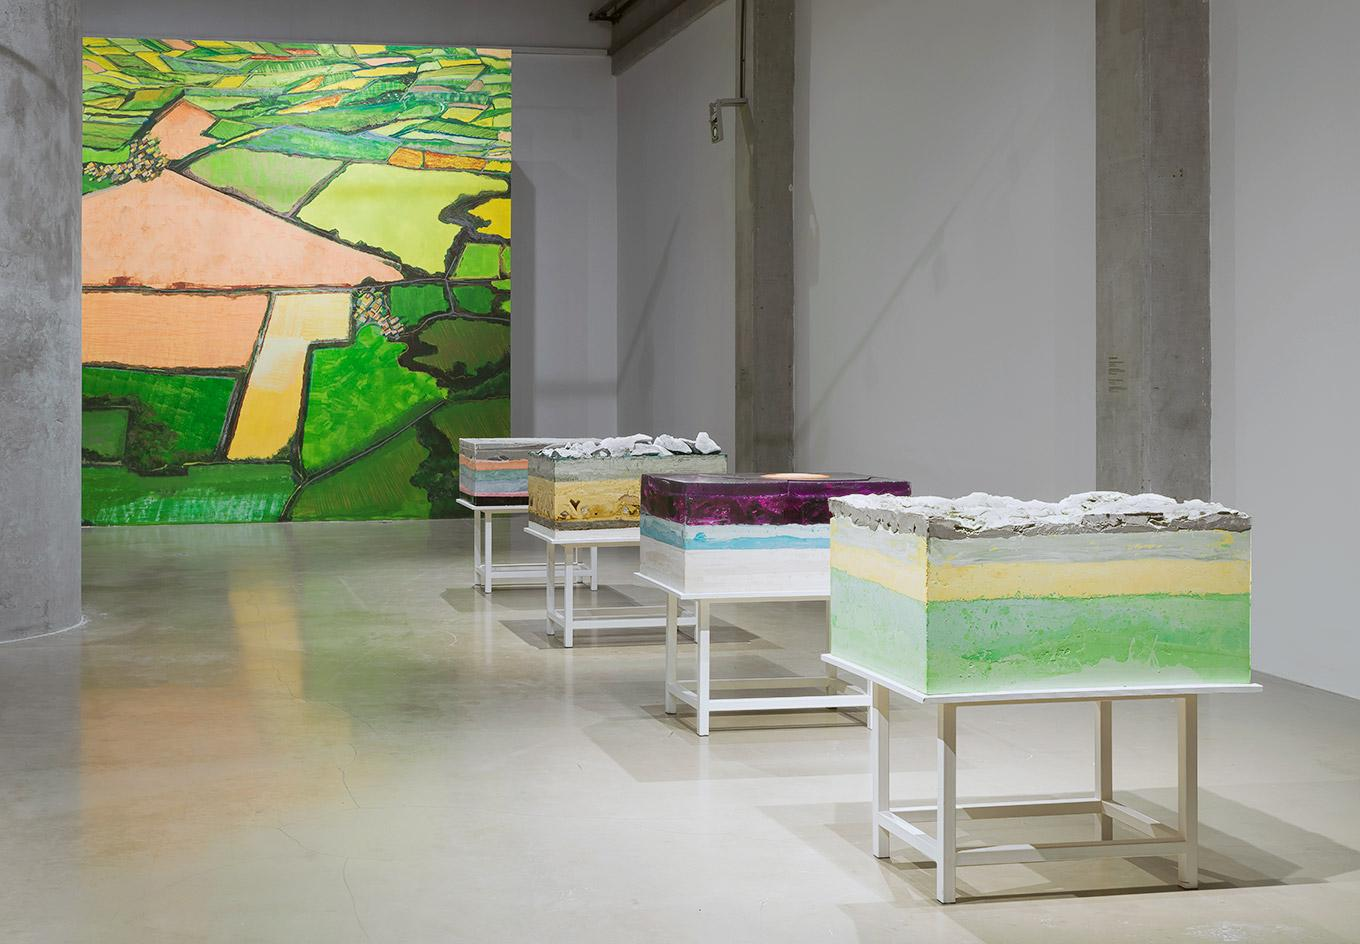 Installation view of 'Non-Imagined Perspectives' by Aida Mahmudova at Yarat Contemporary Art Centre, Baku